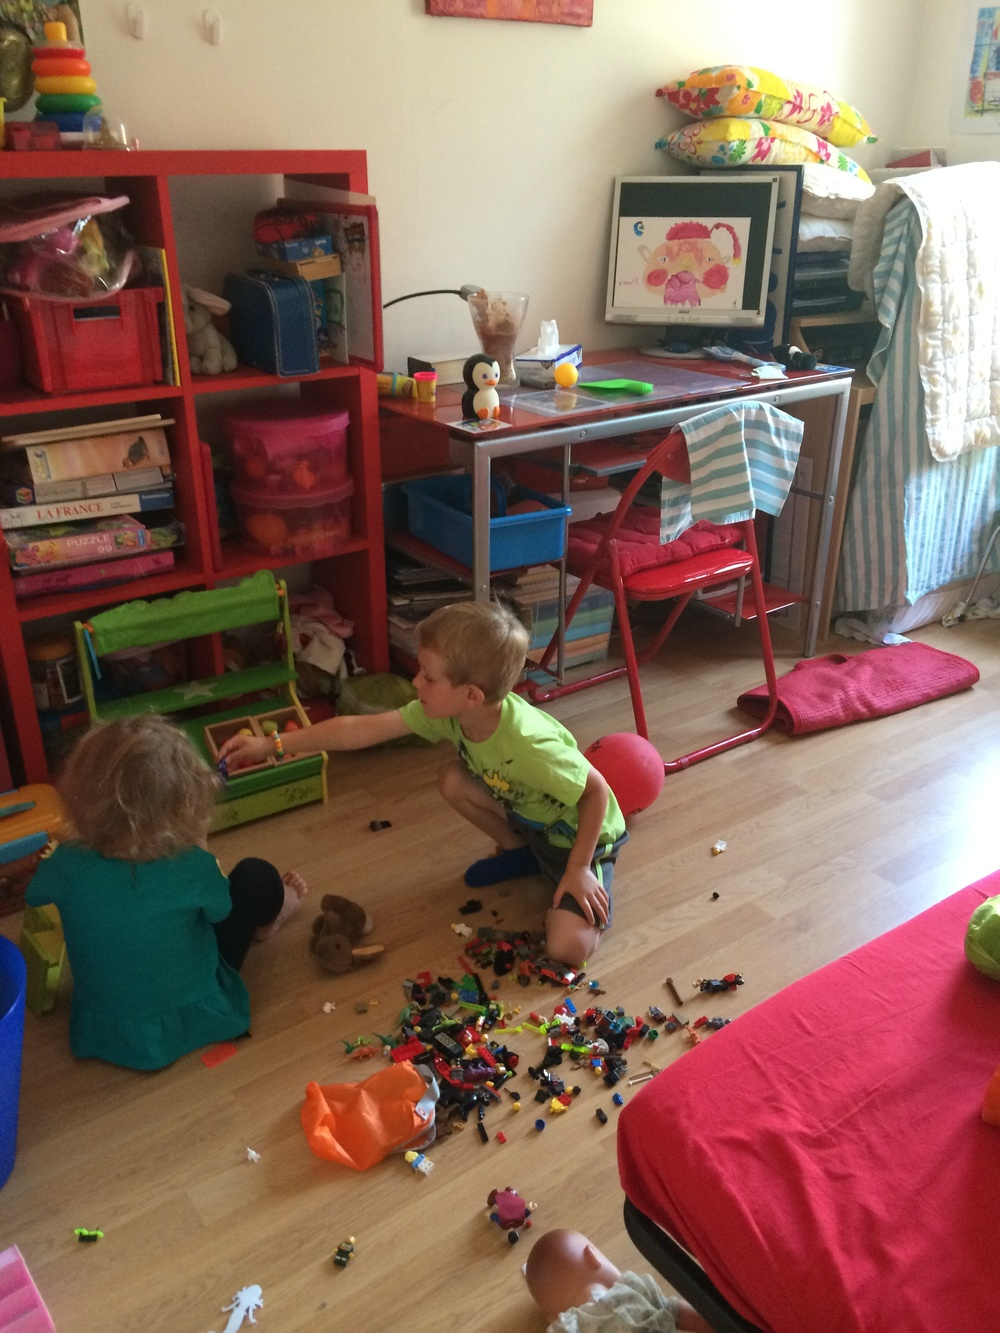 Kian and Hannah playing with legos